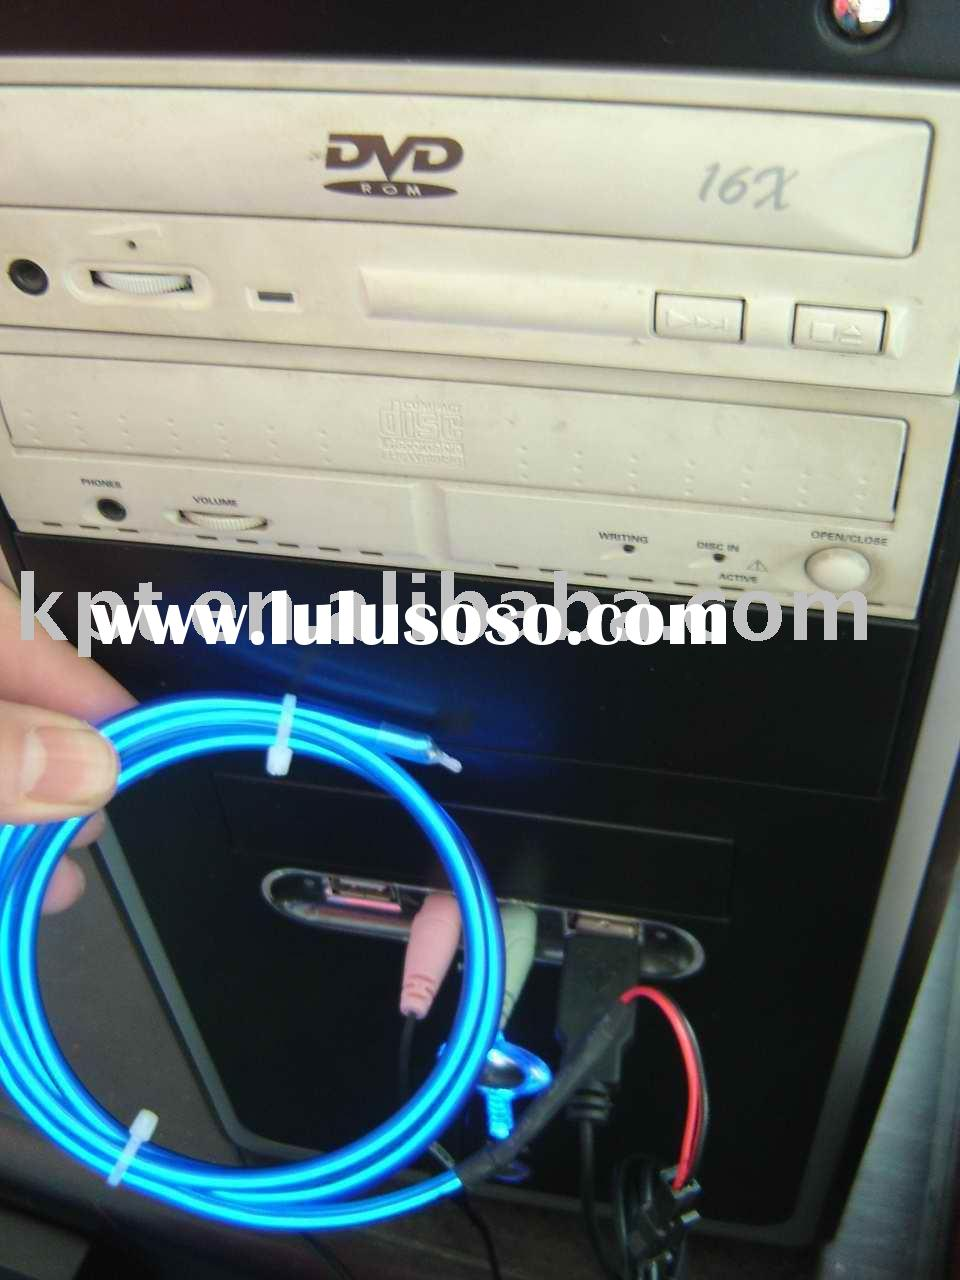 Computer decoration neon lighting rope cable,kpt neon chasing wire,USB connector neon decration